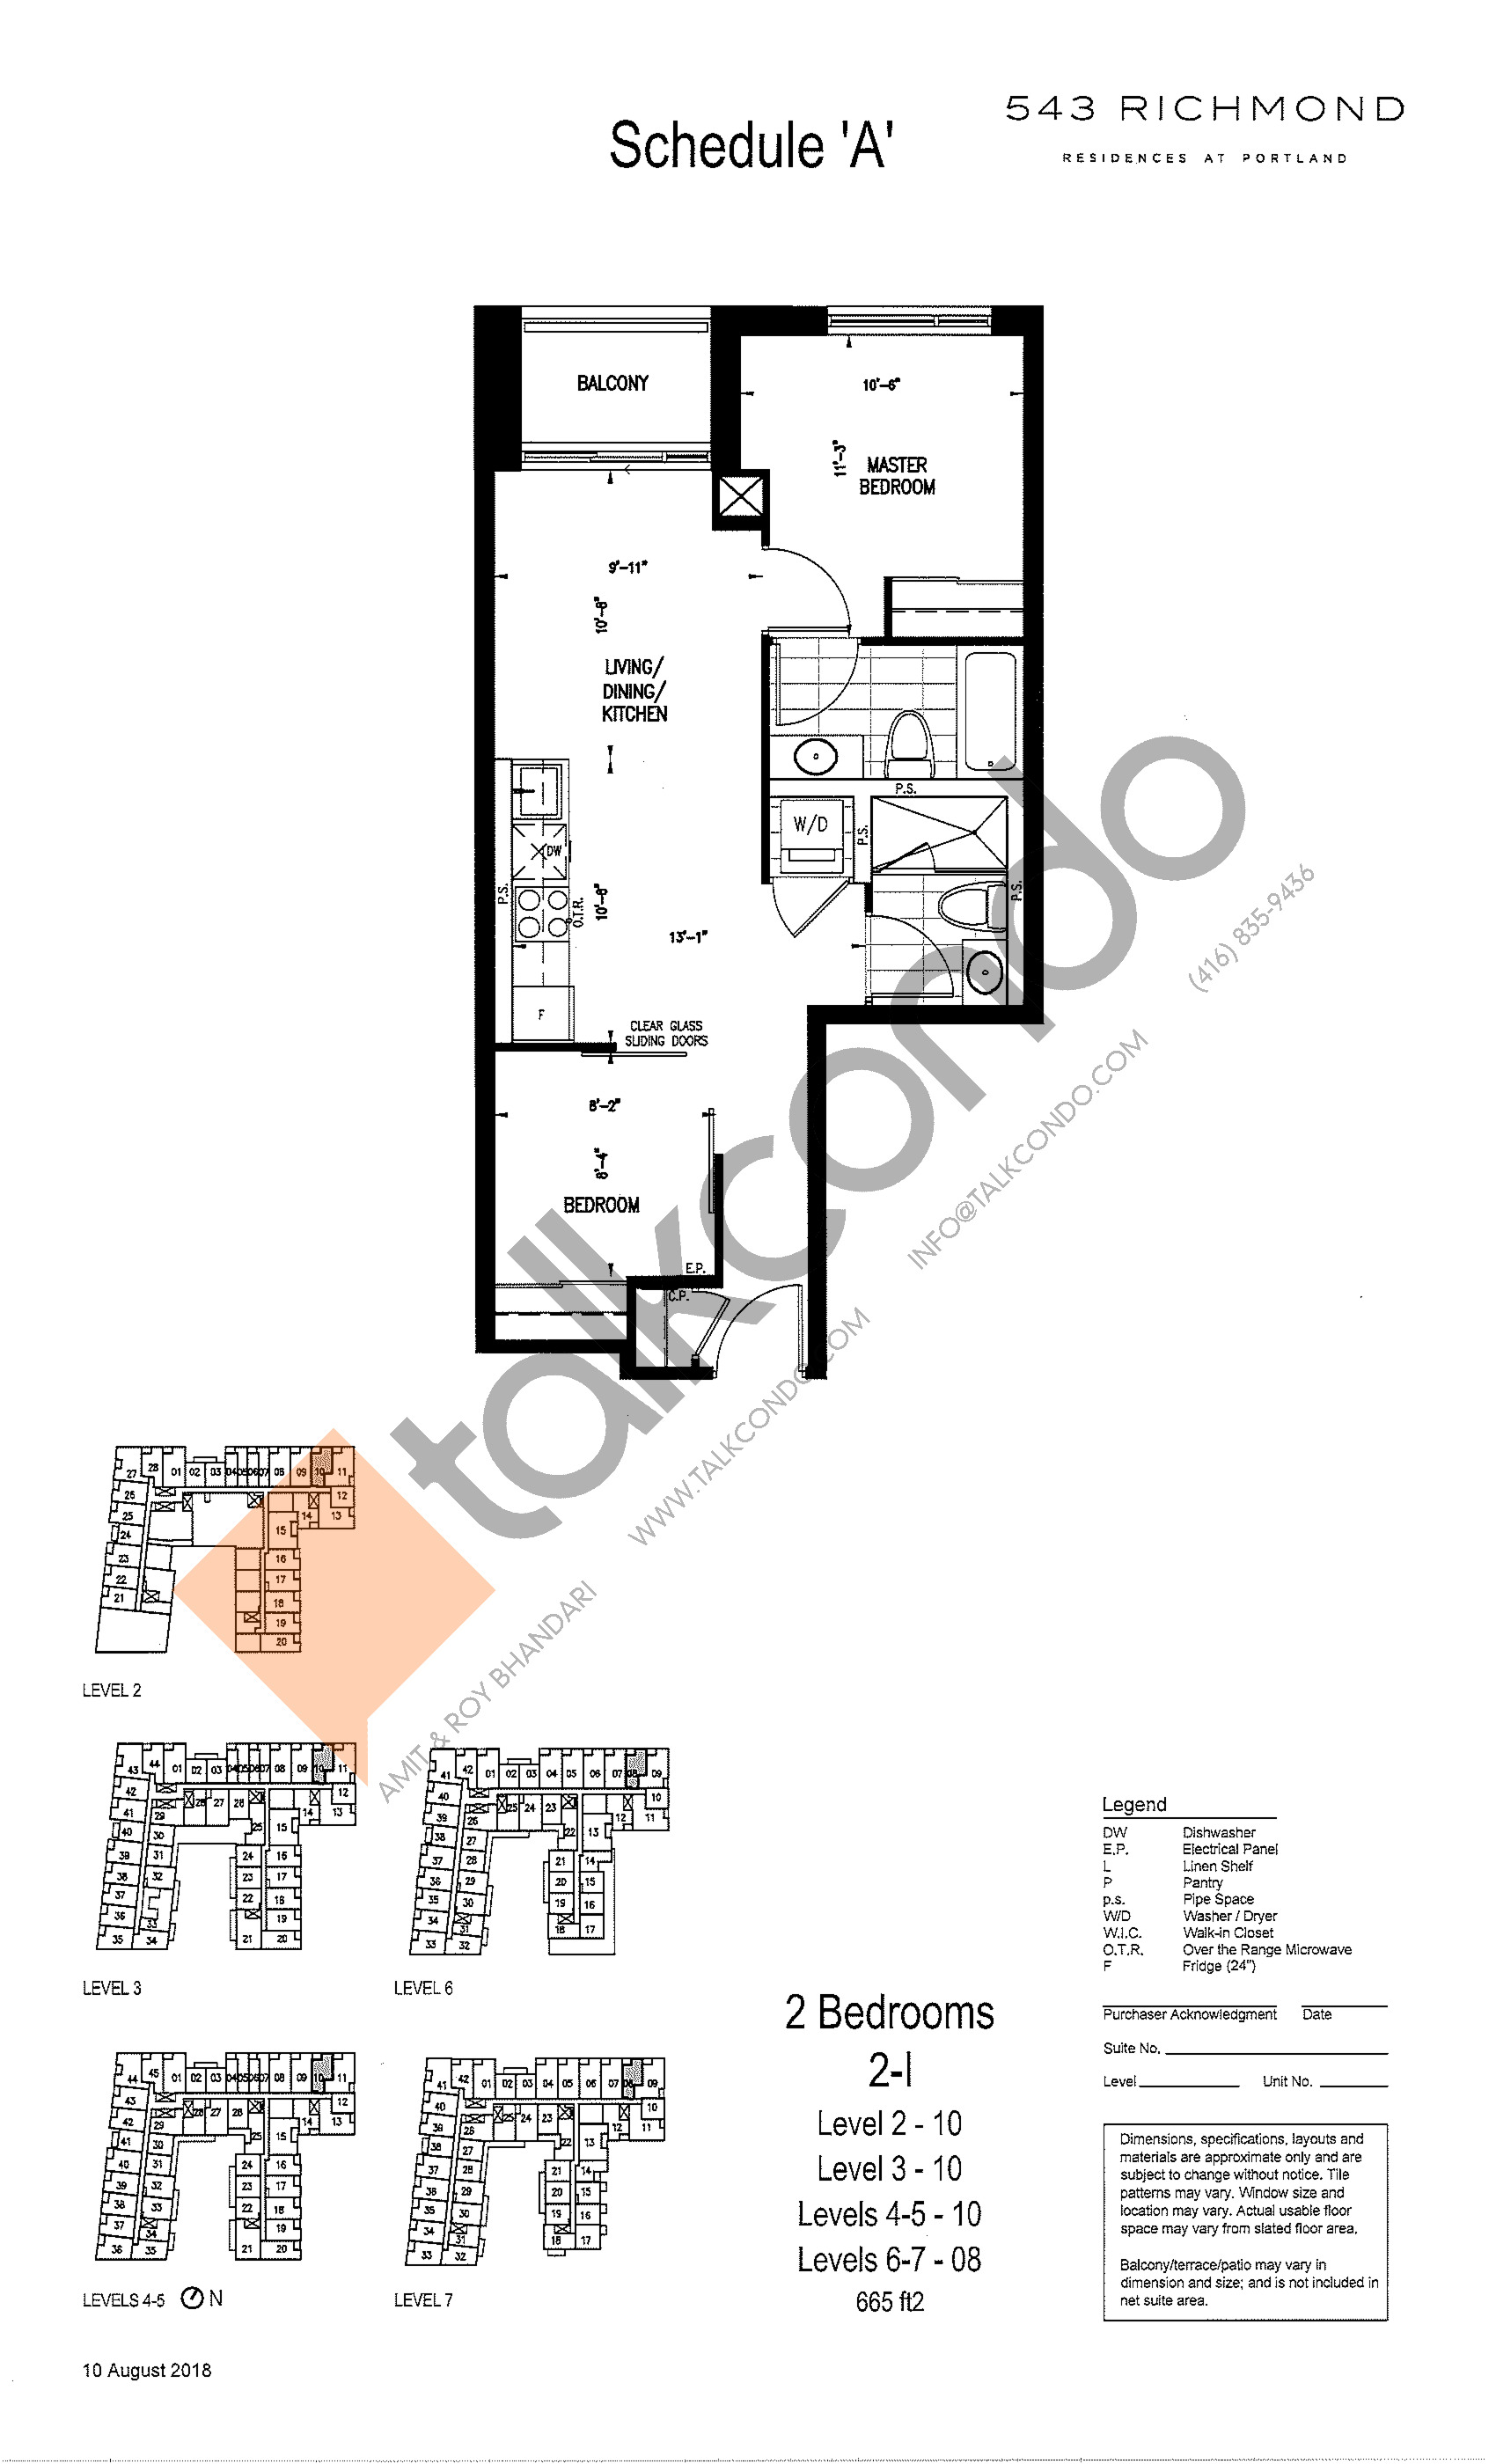 2-I Floor Plan at 543 Richmond St Condos - 665 sq.ft